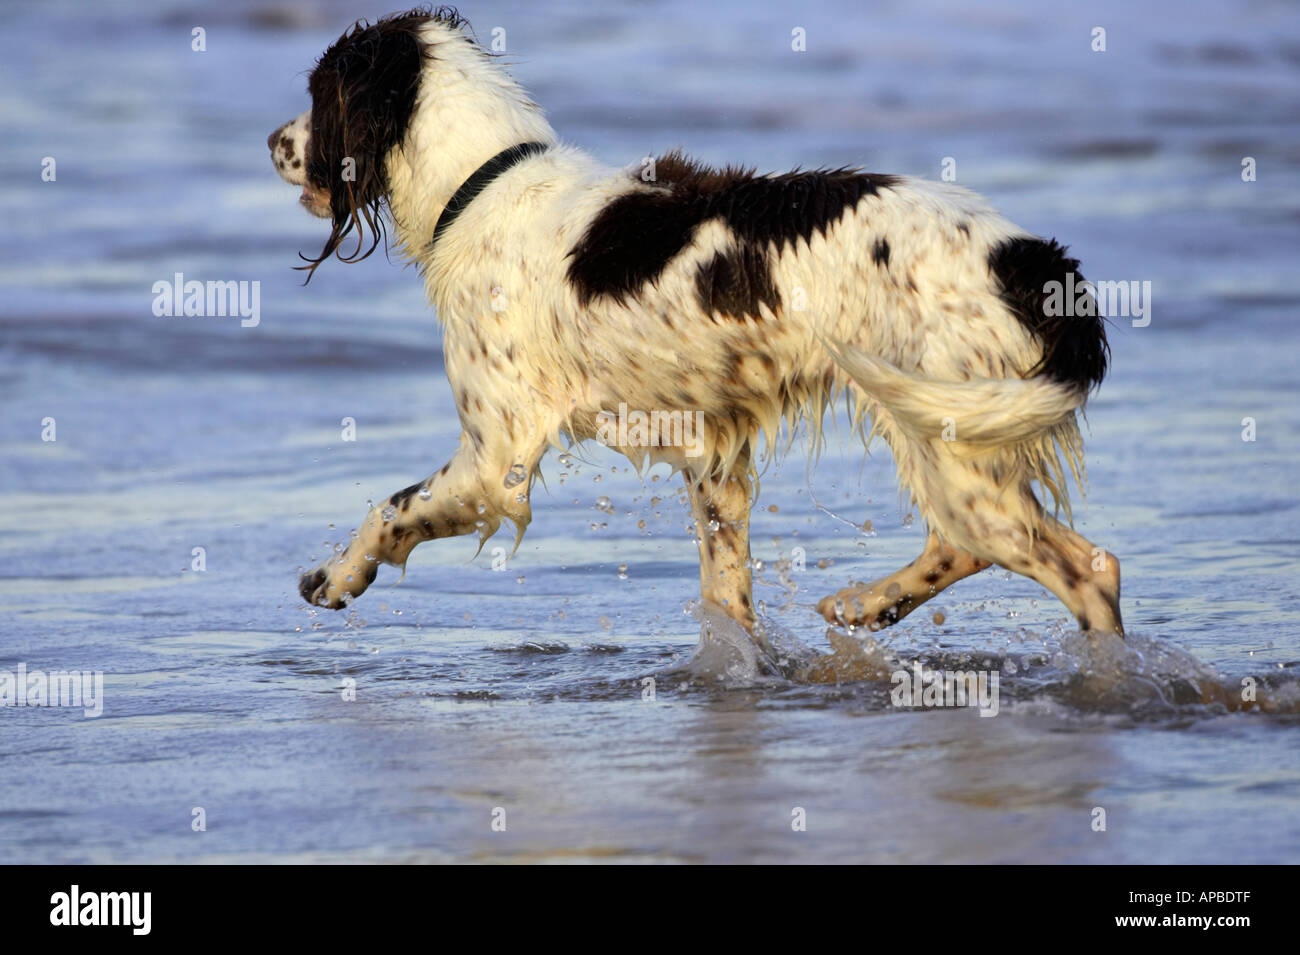 Best Dog Breed For The Sea